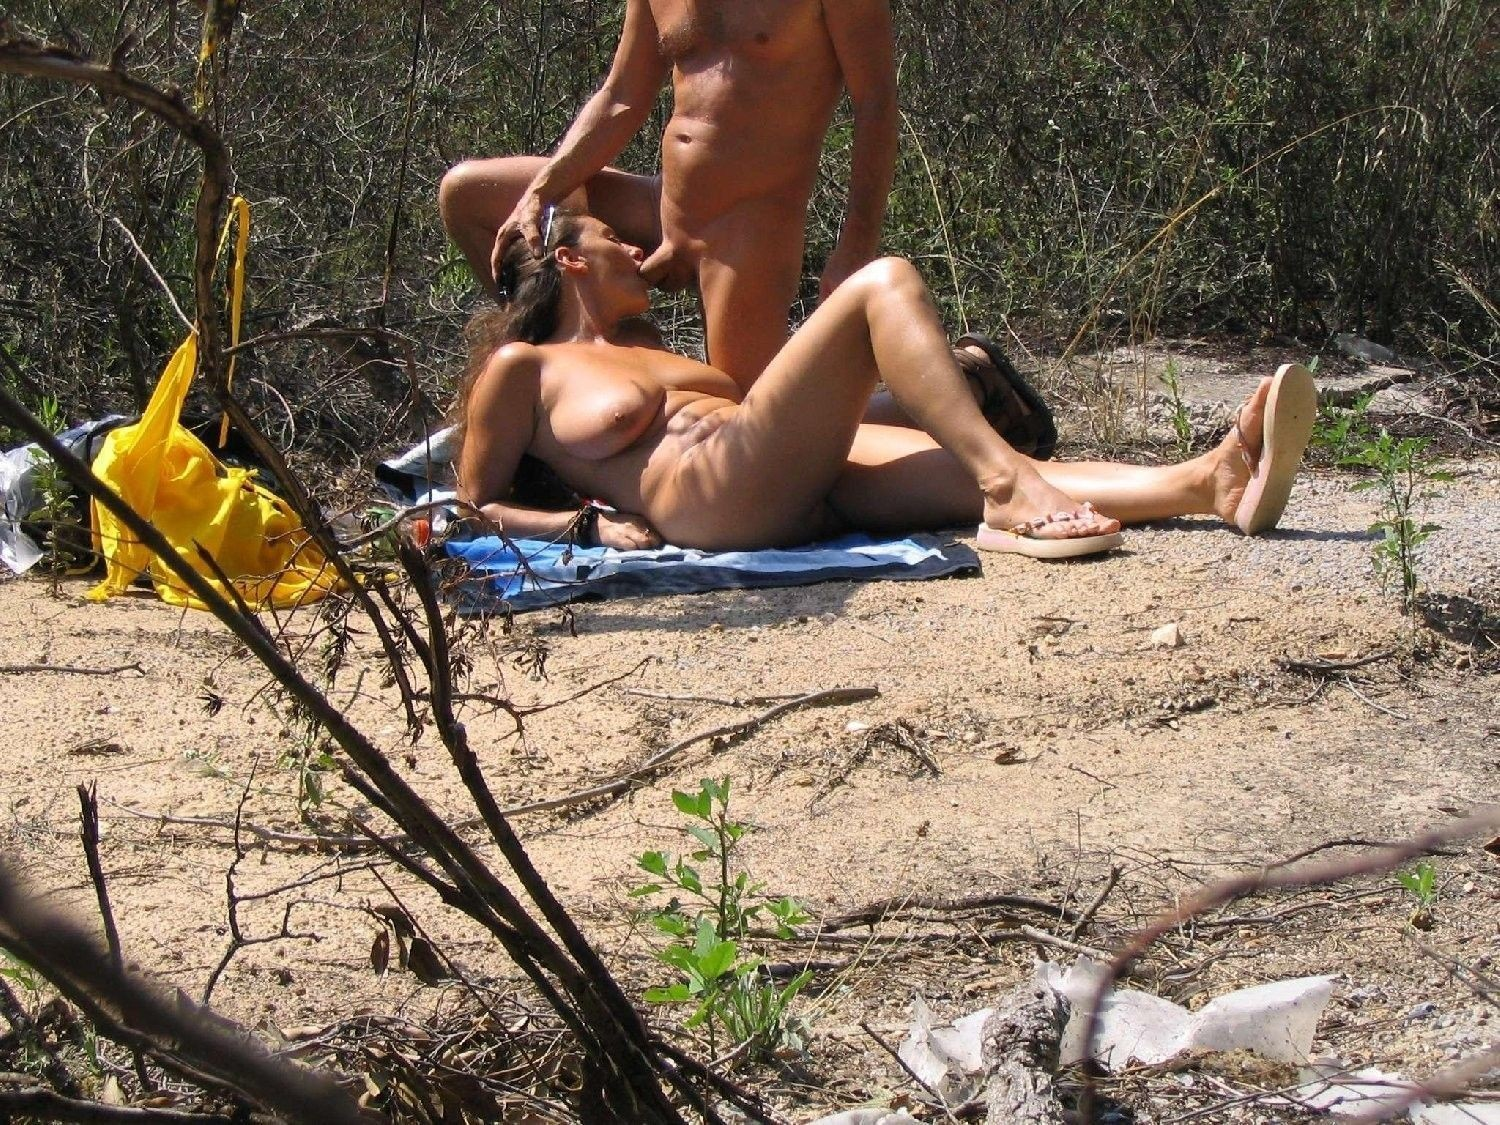 Voyeur nude outdoor, nude super young girls